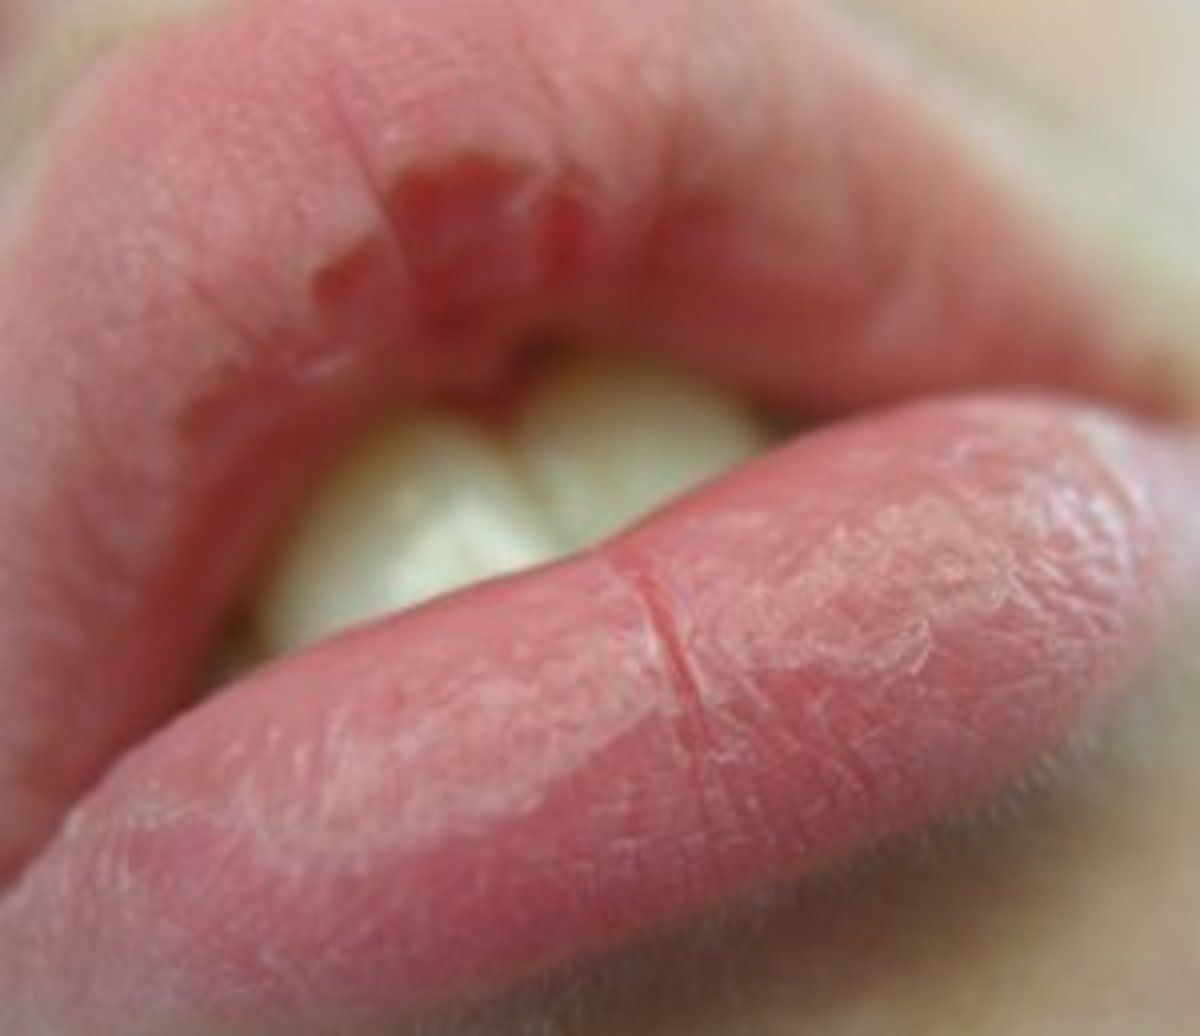 How to Care for Dry, Cracked, Chapped Lips